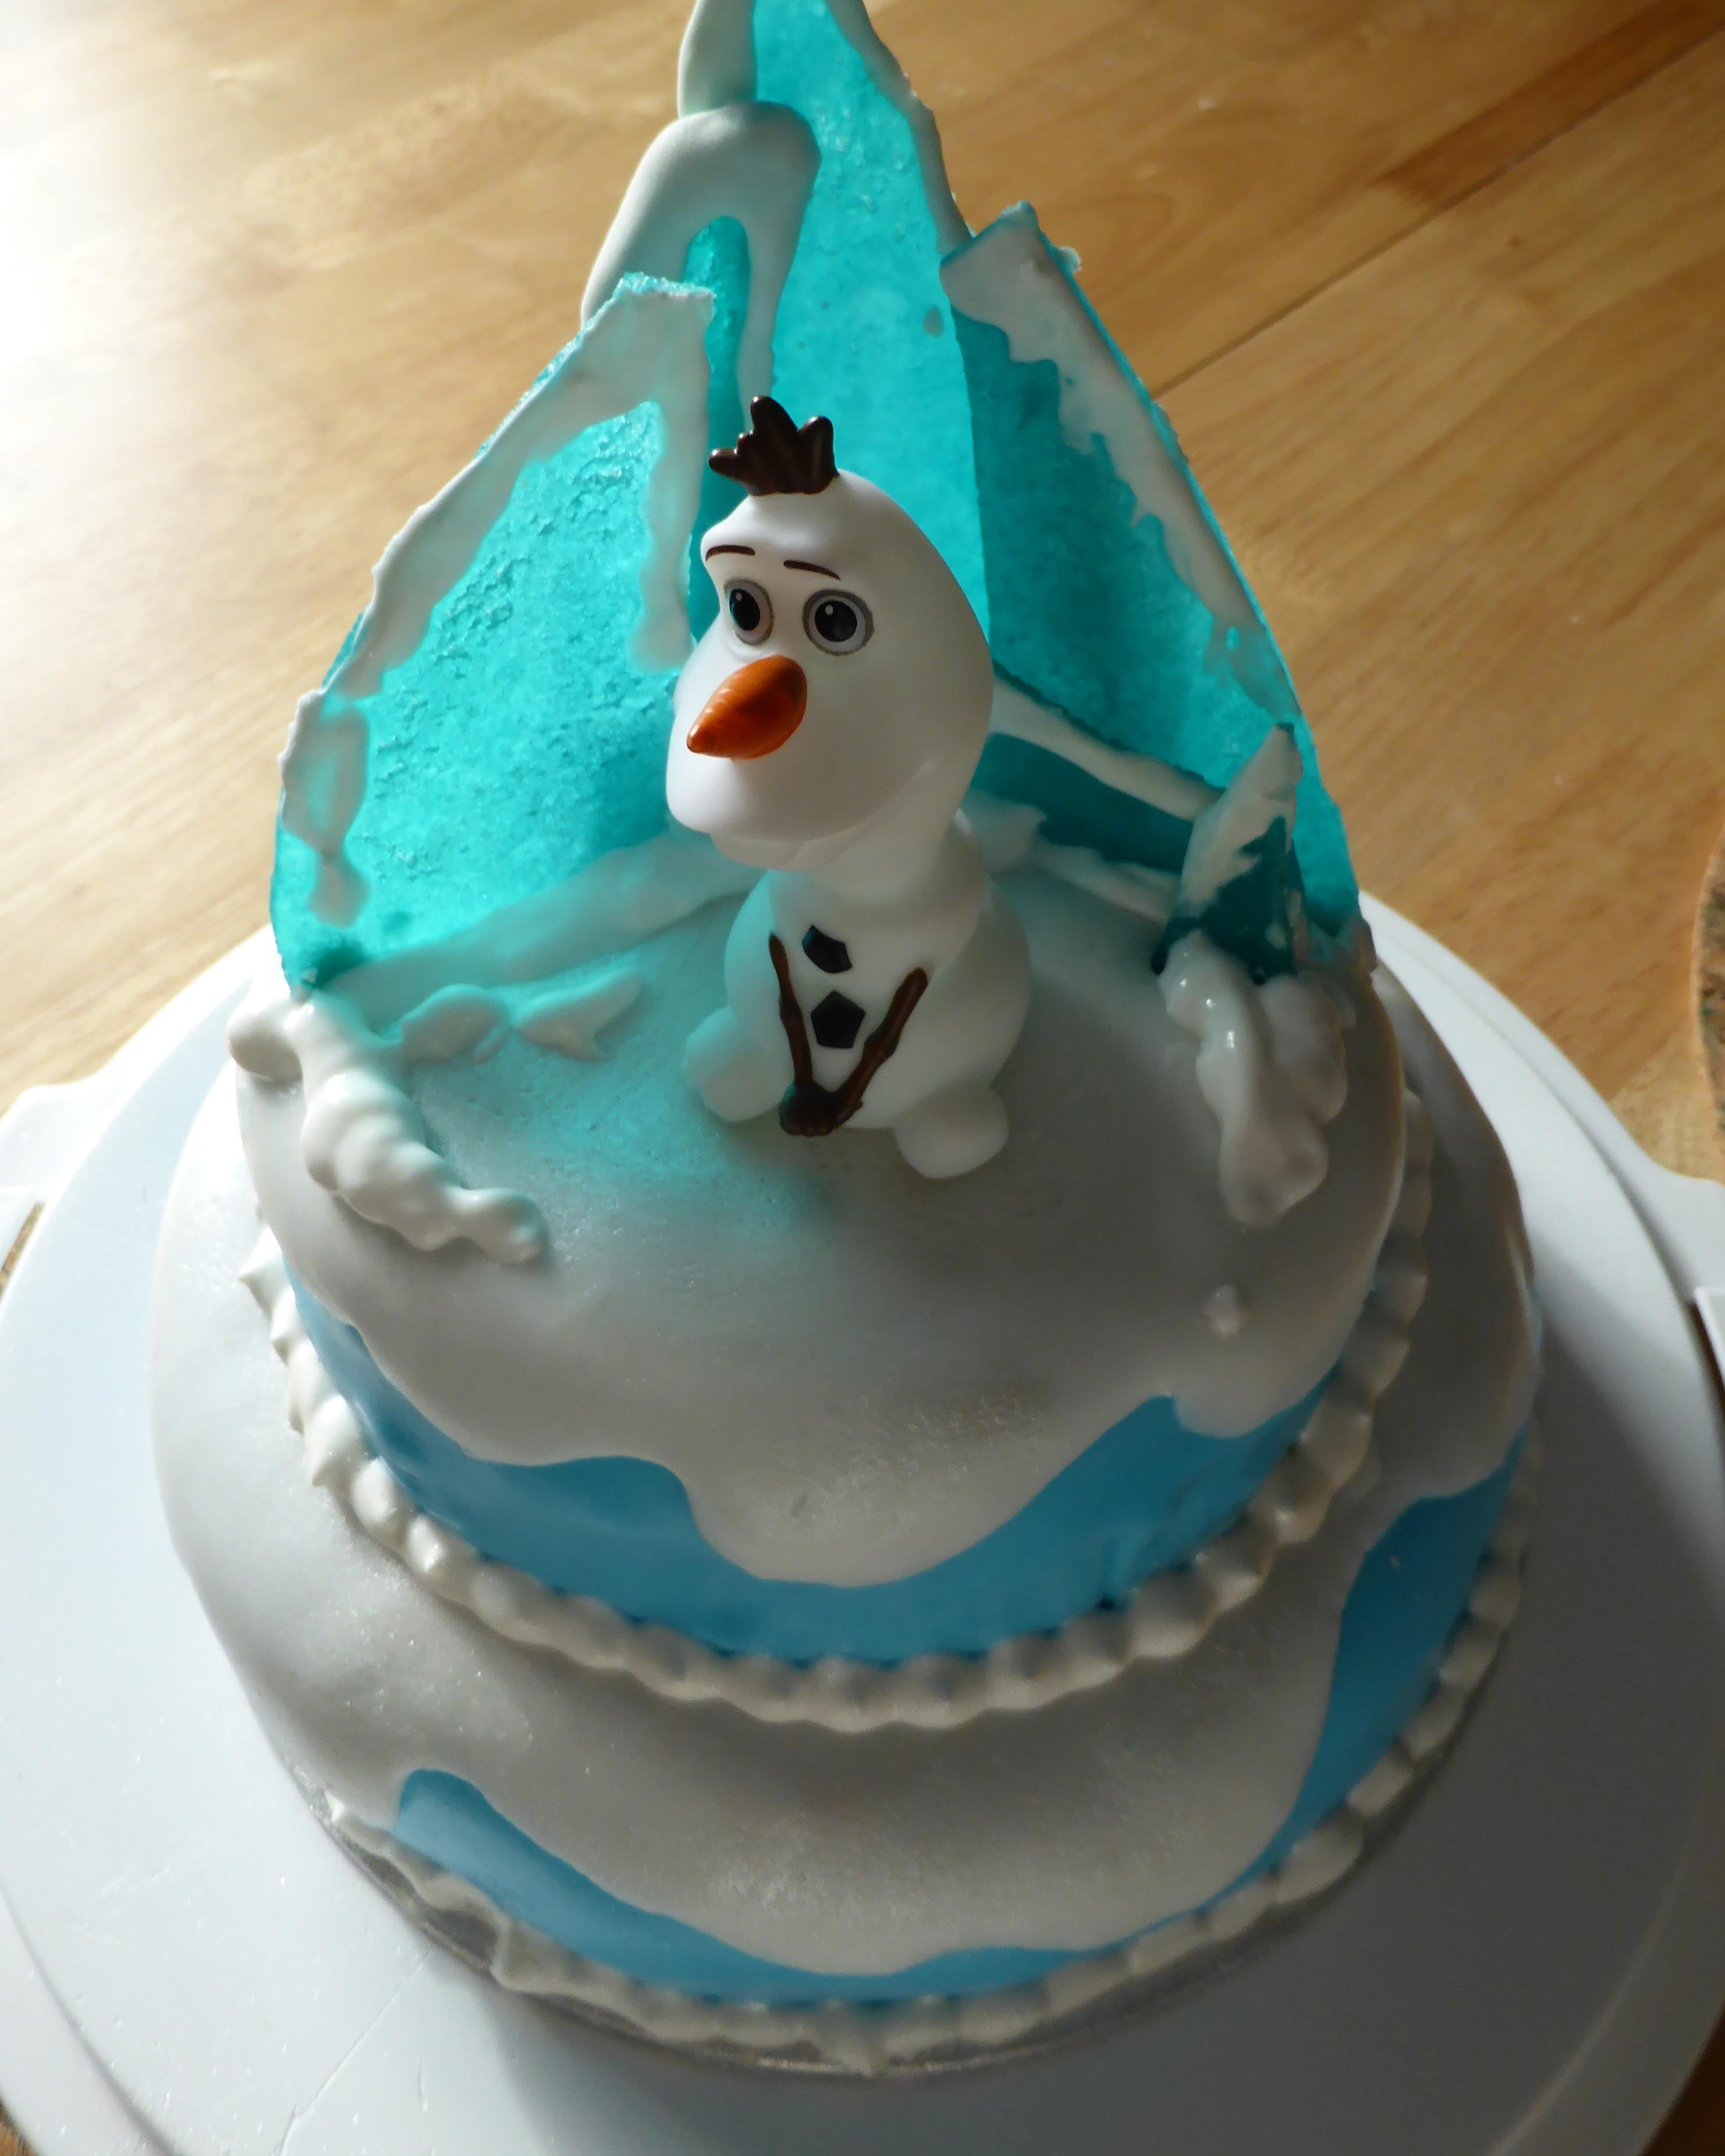 Frozen Themed Birthday Cakes Frozen Themed Birthday Cake Nerd With A Manicure